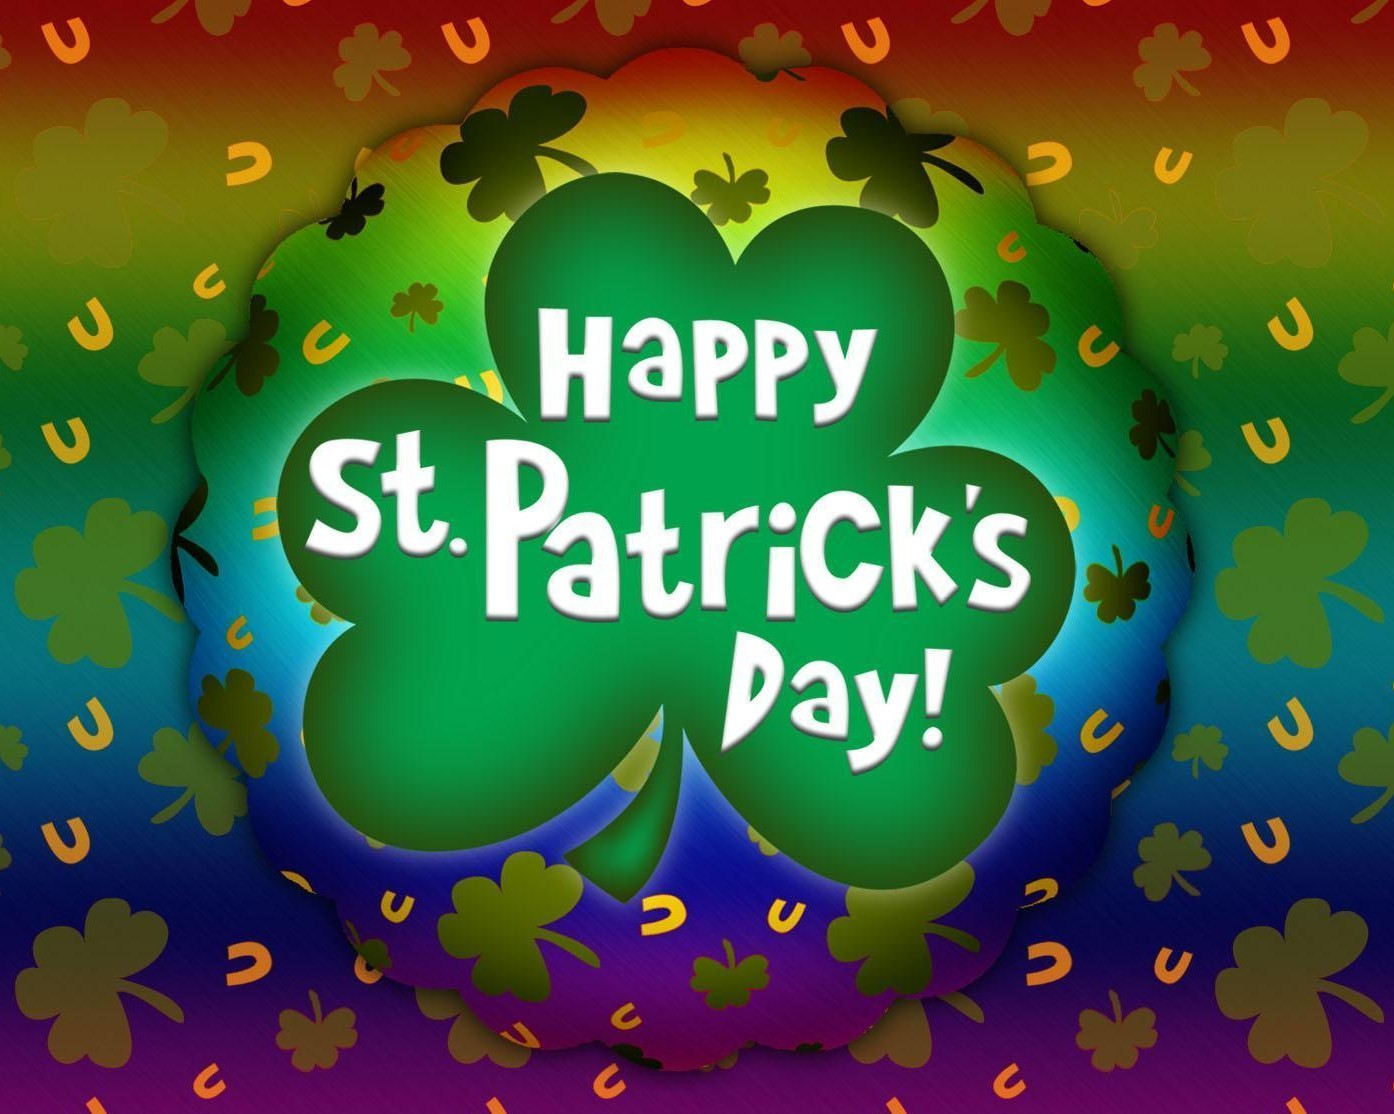 gallery St Patricks Day Greetings WallPapers Fun Gallery Images 1394x1114